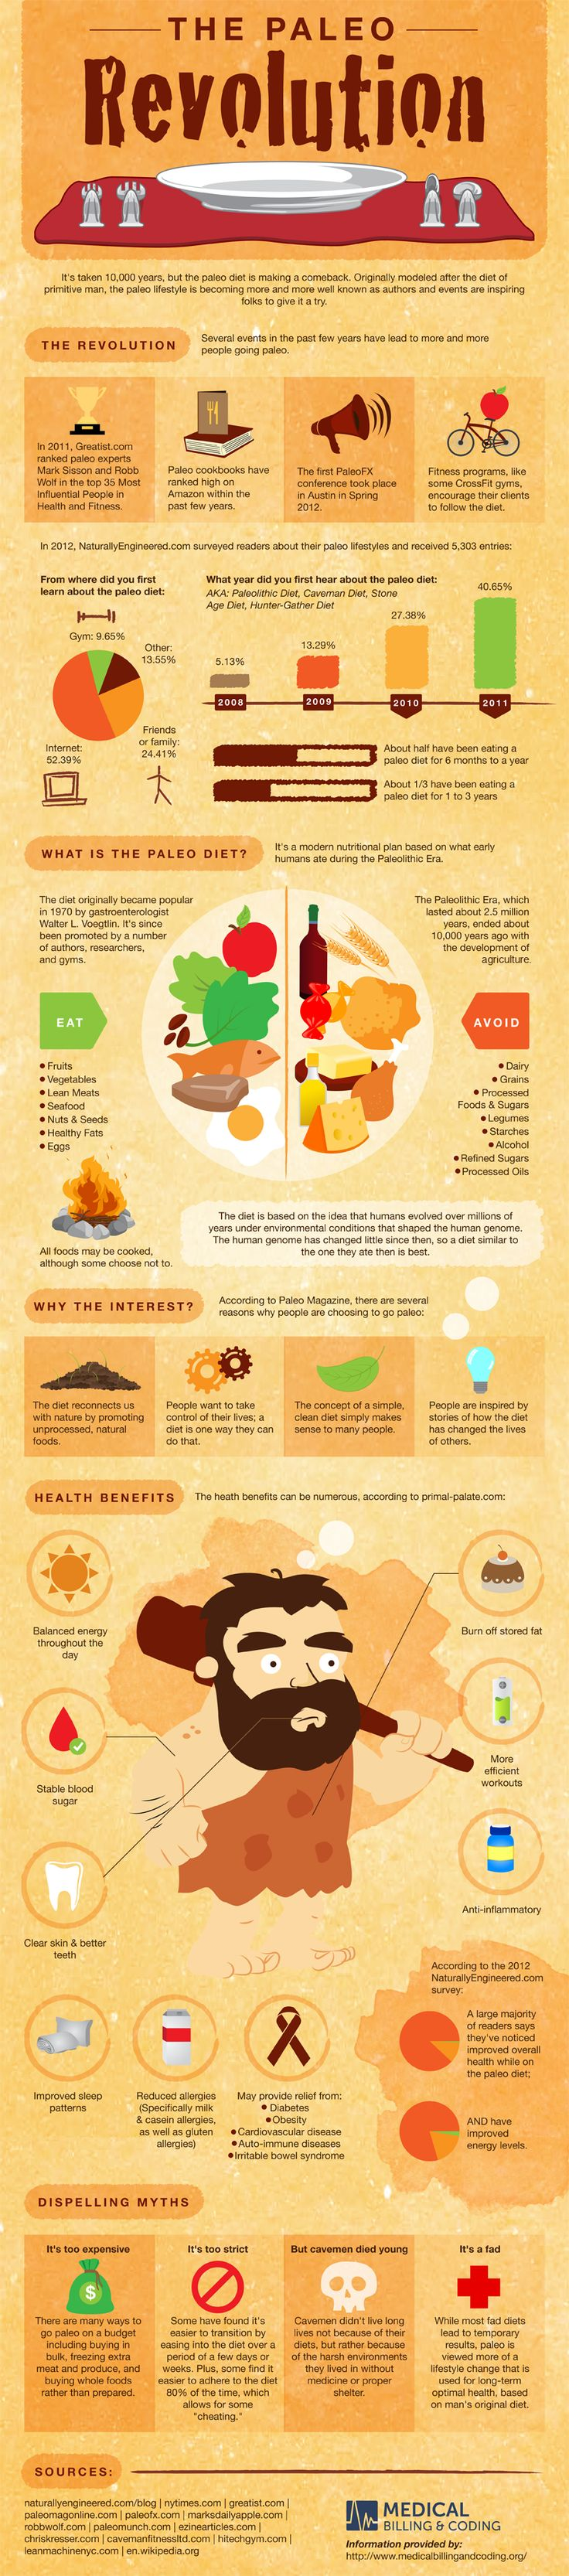 The Paleo Diet Revolution | infographic via http://www.medicalbillingandcoding.org/blog/the-paleo-revolution/